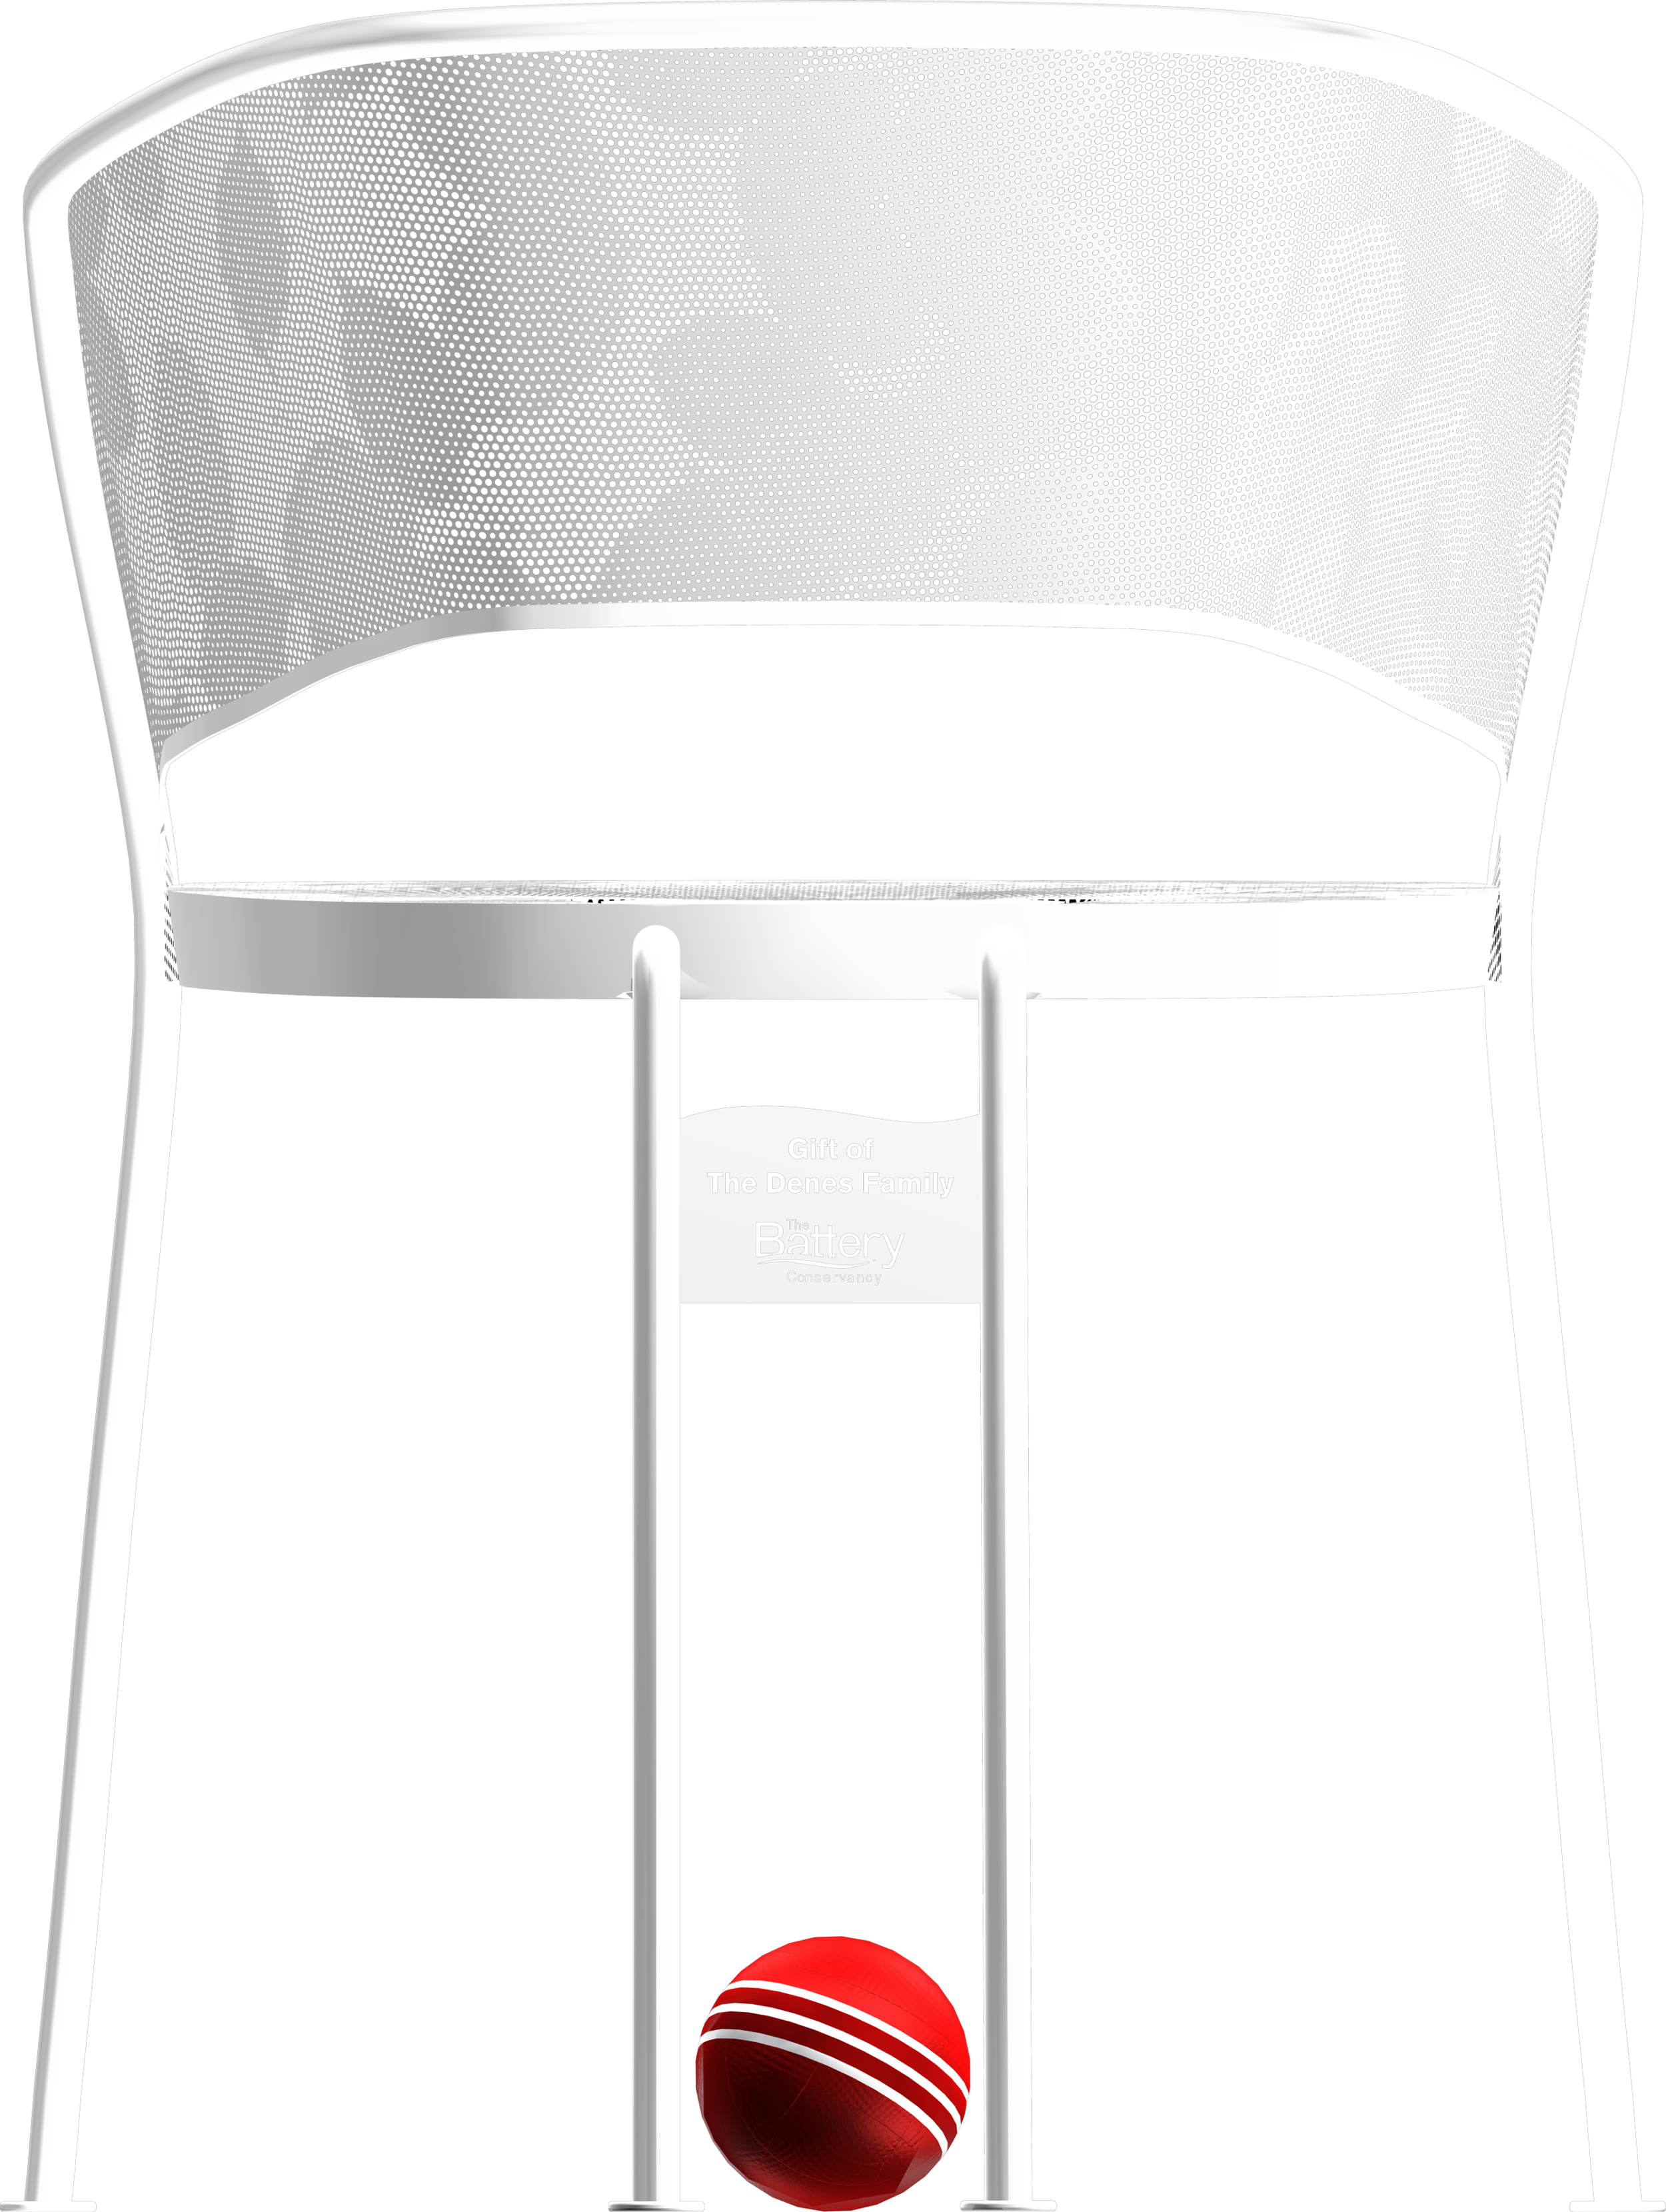 whyte-rear2.png